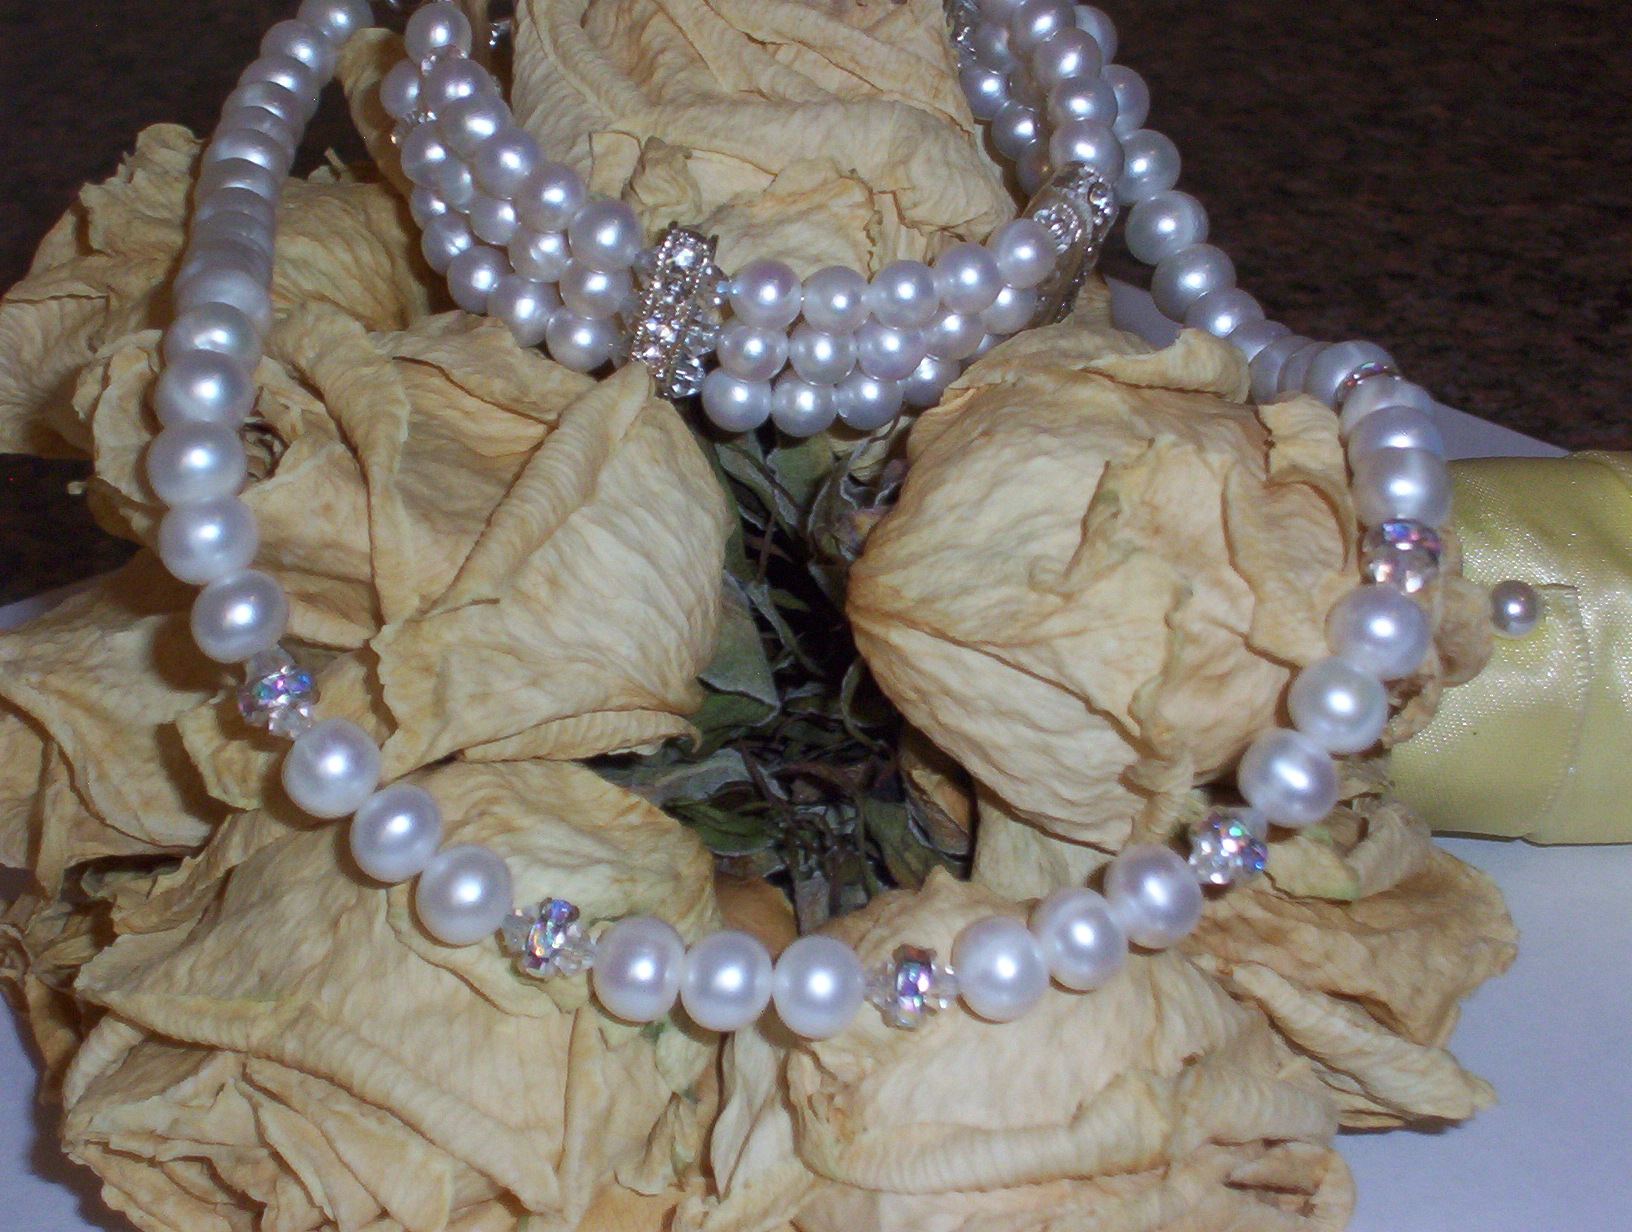 Jewelry, Bracelets, Bridal, Necklace, Bracelet, Pearl, Seaside jewelry designs